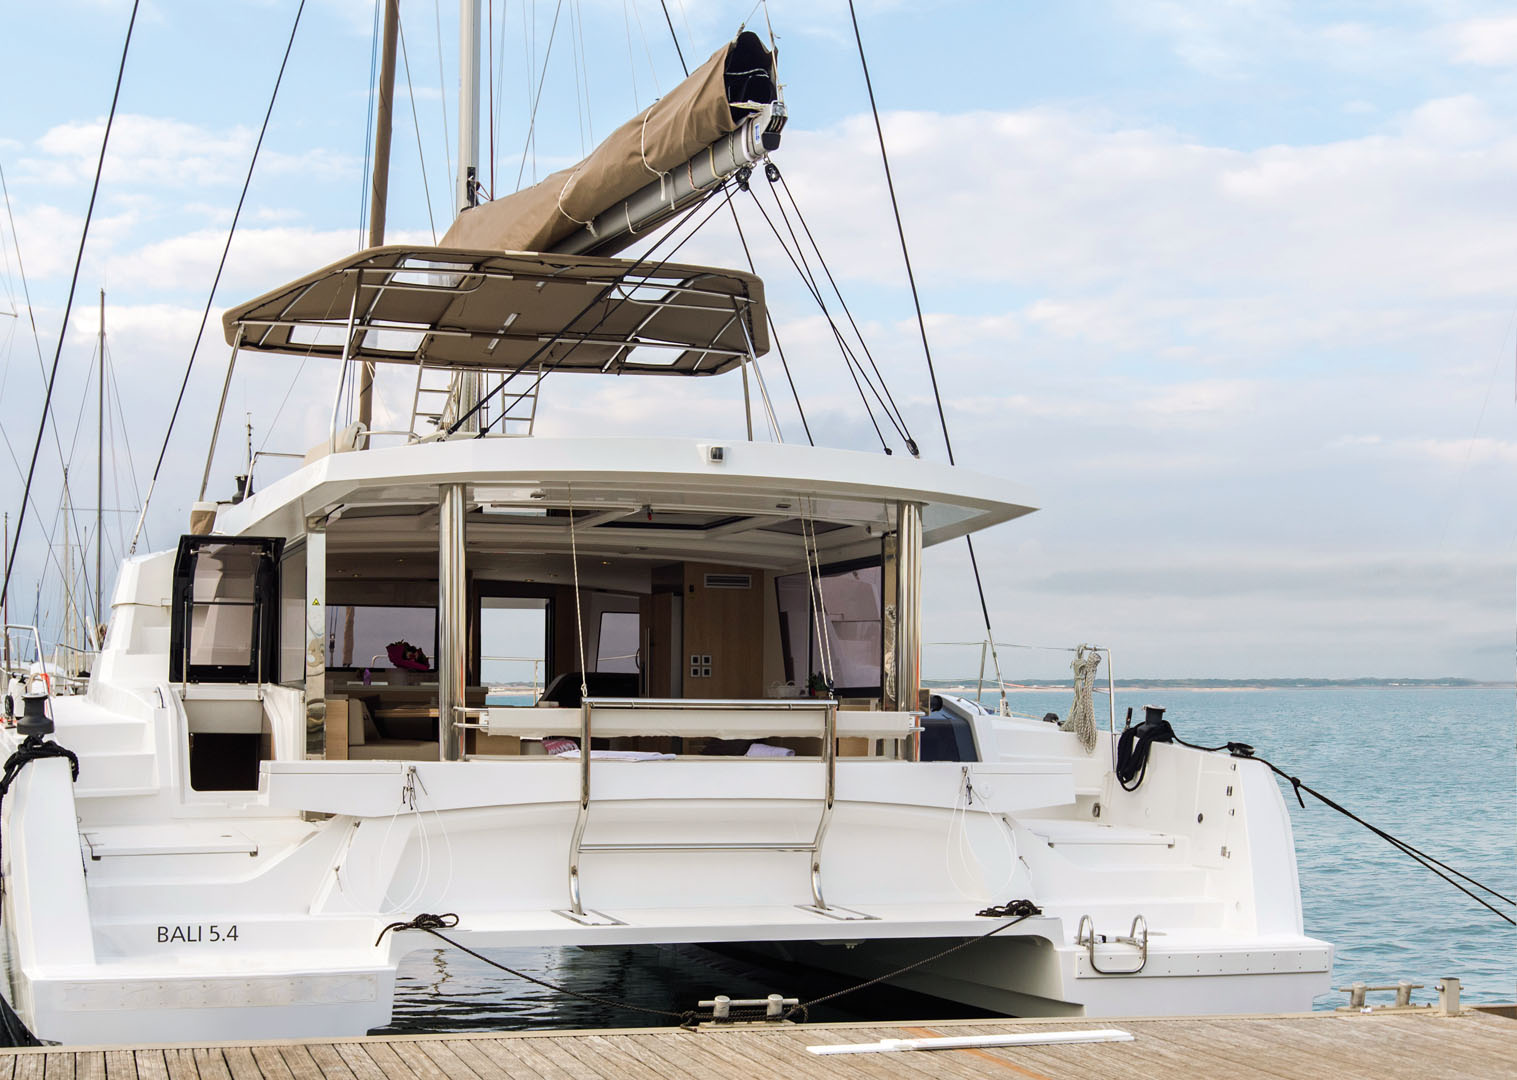 Catamaran BALI 5 4 - pictures, plans and features